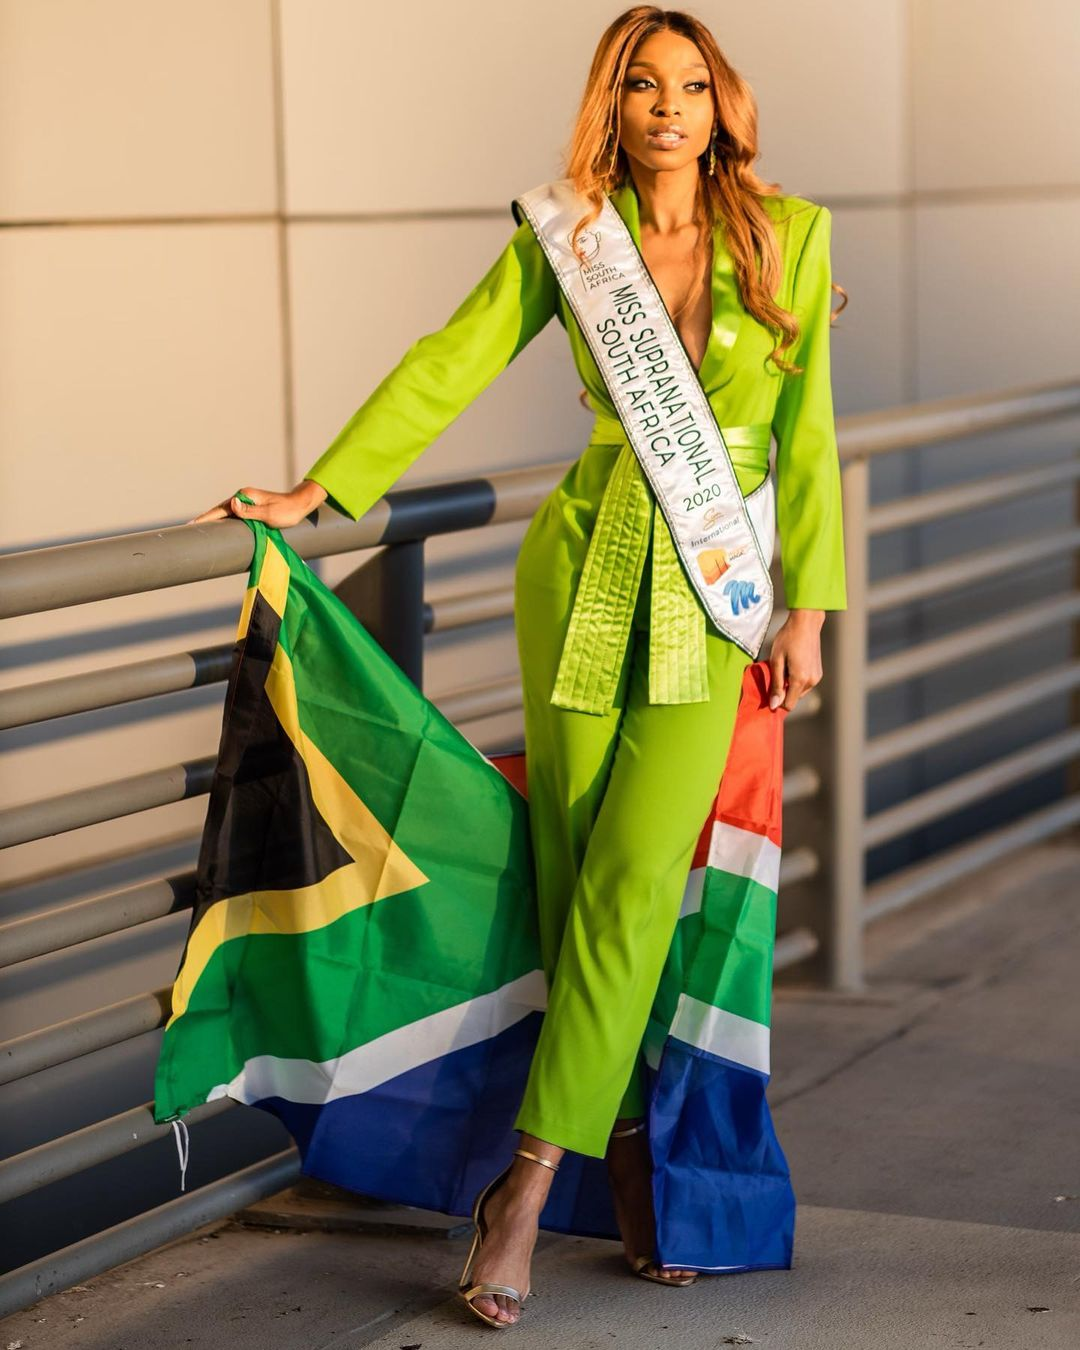 Miss Supranational SA Thato Mosehle off to Poland with Zonzi's goodluck charm